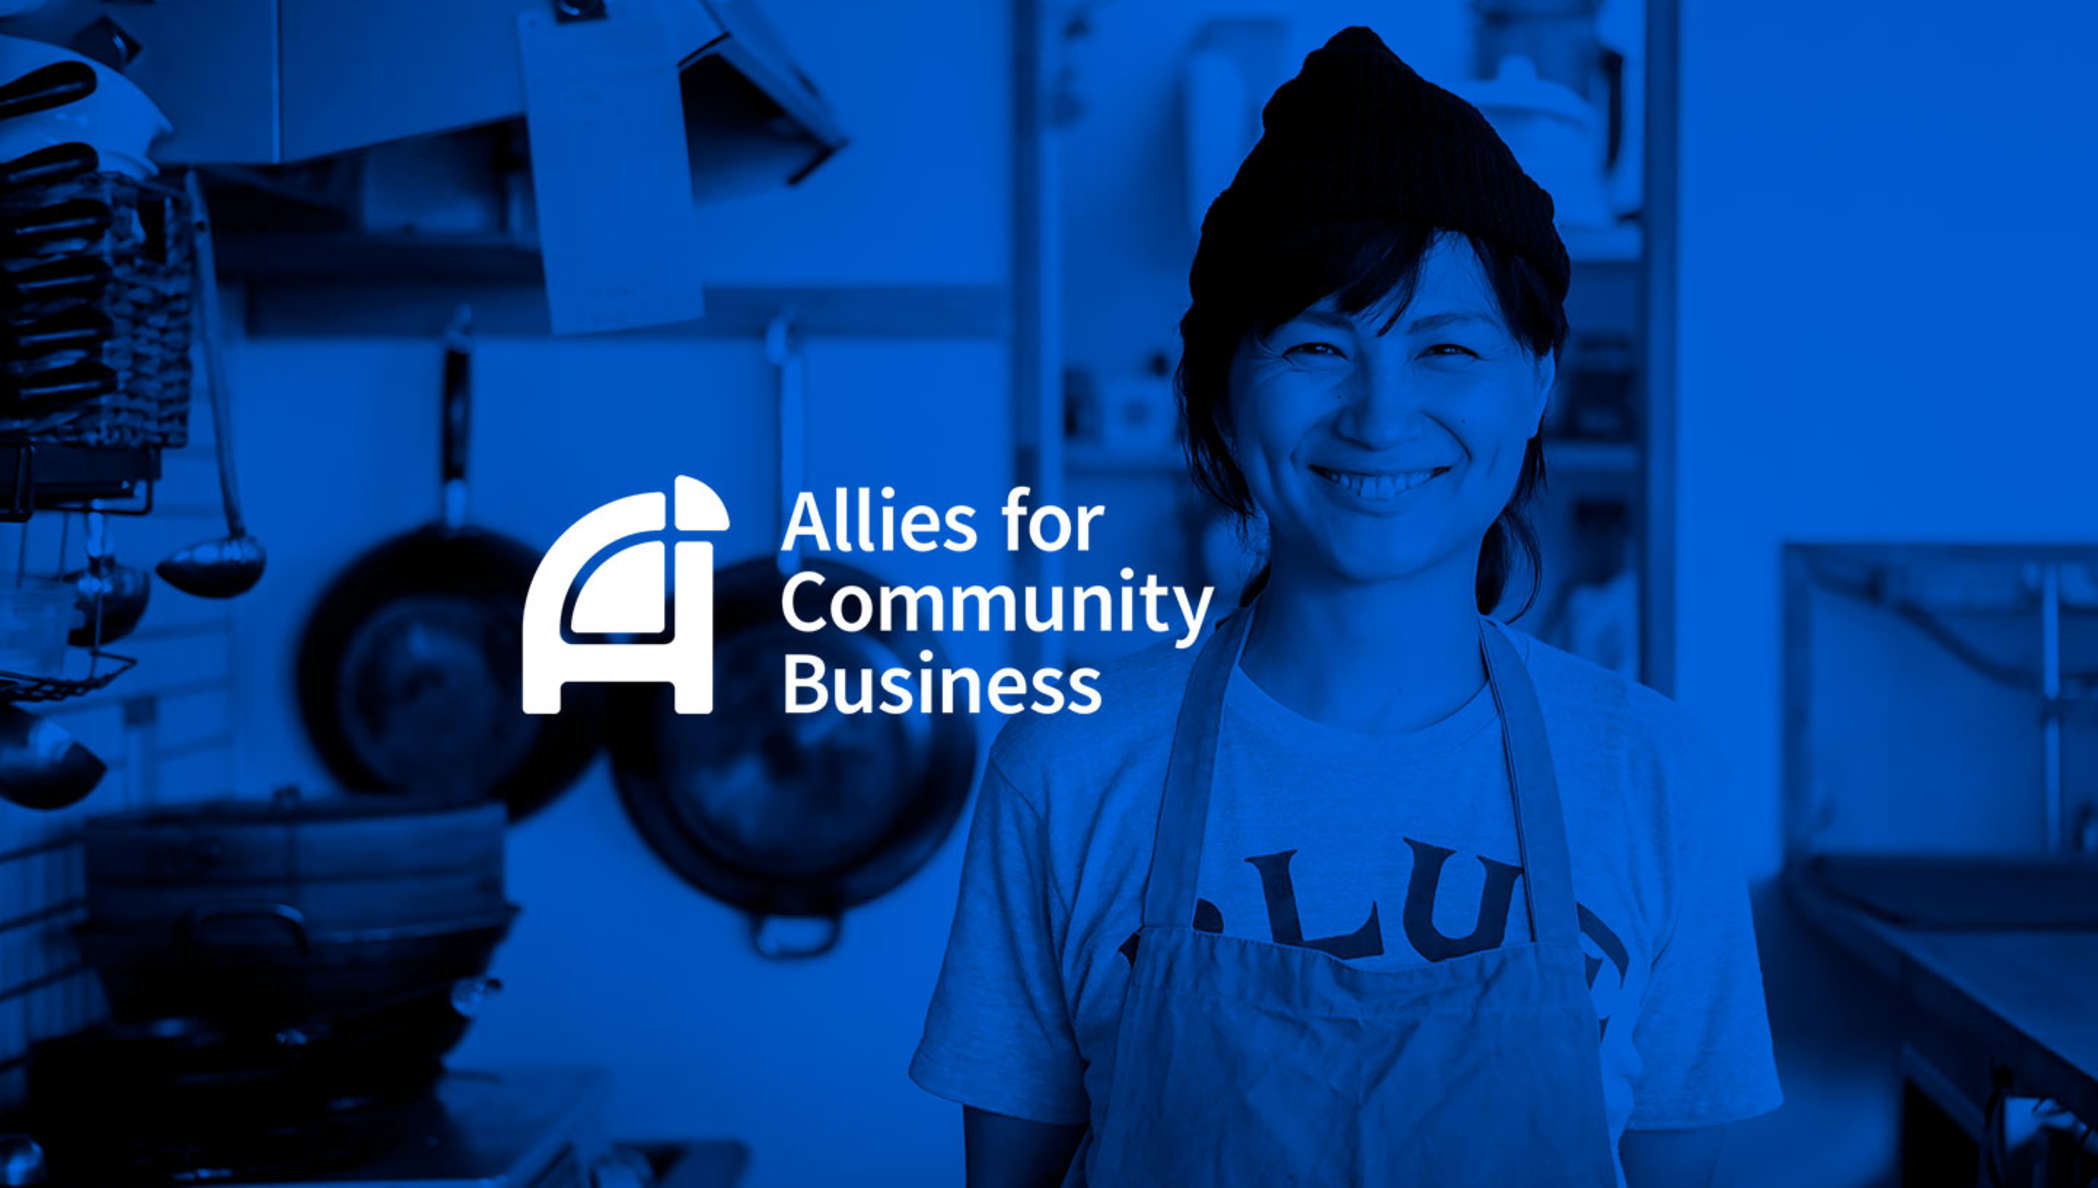 DocuSign customer Allies for Community Business is using digital ID verification to conduct safer lending practices.